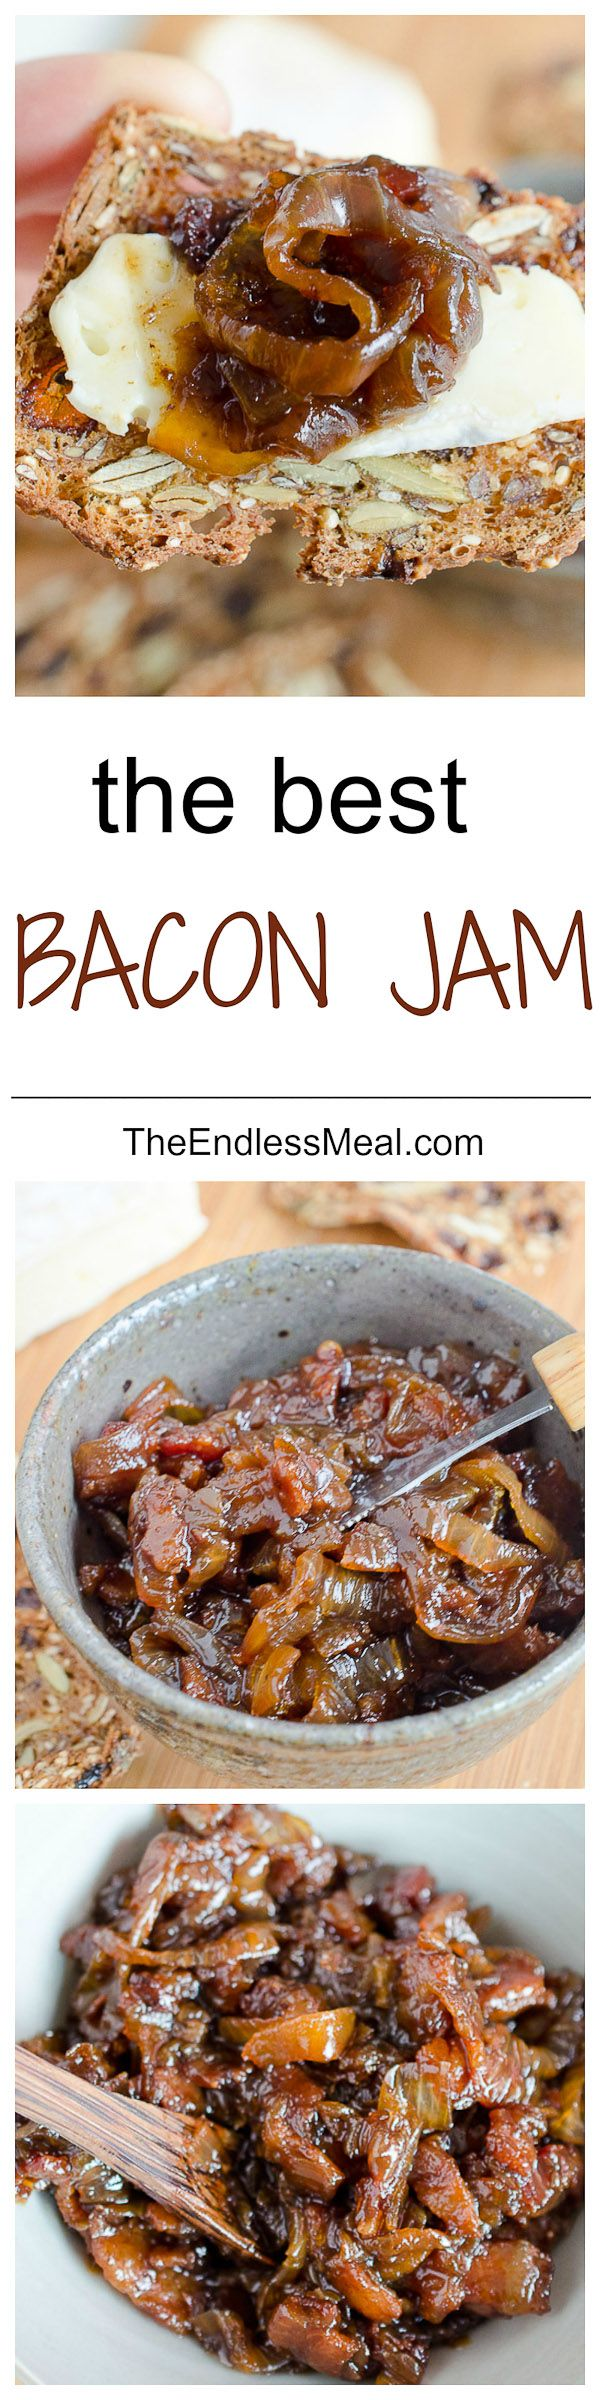 Bacon jam. Made great stocking stuffers! WANT TO MAKE FOR BBQ PARTY FOR FRIEND!